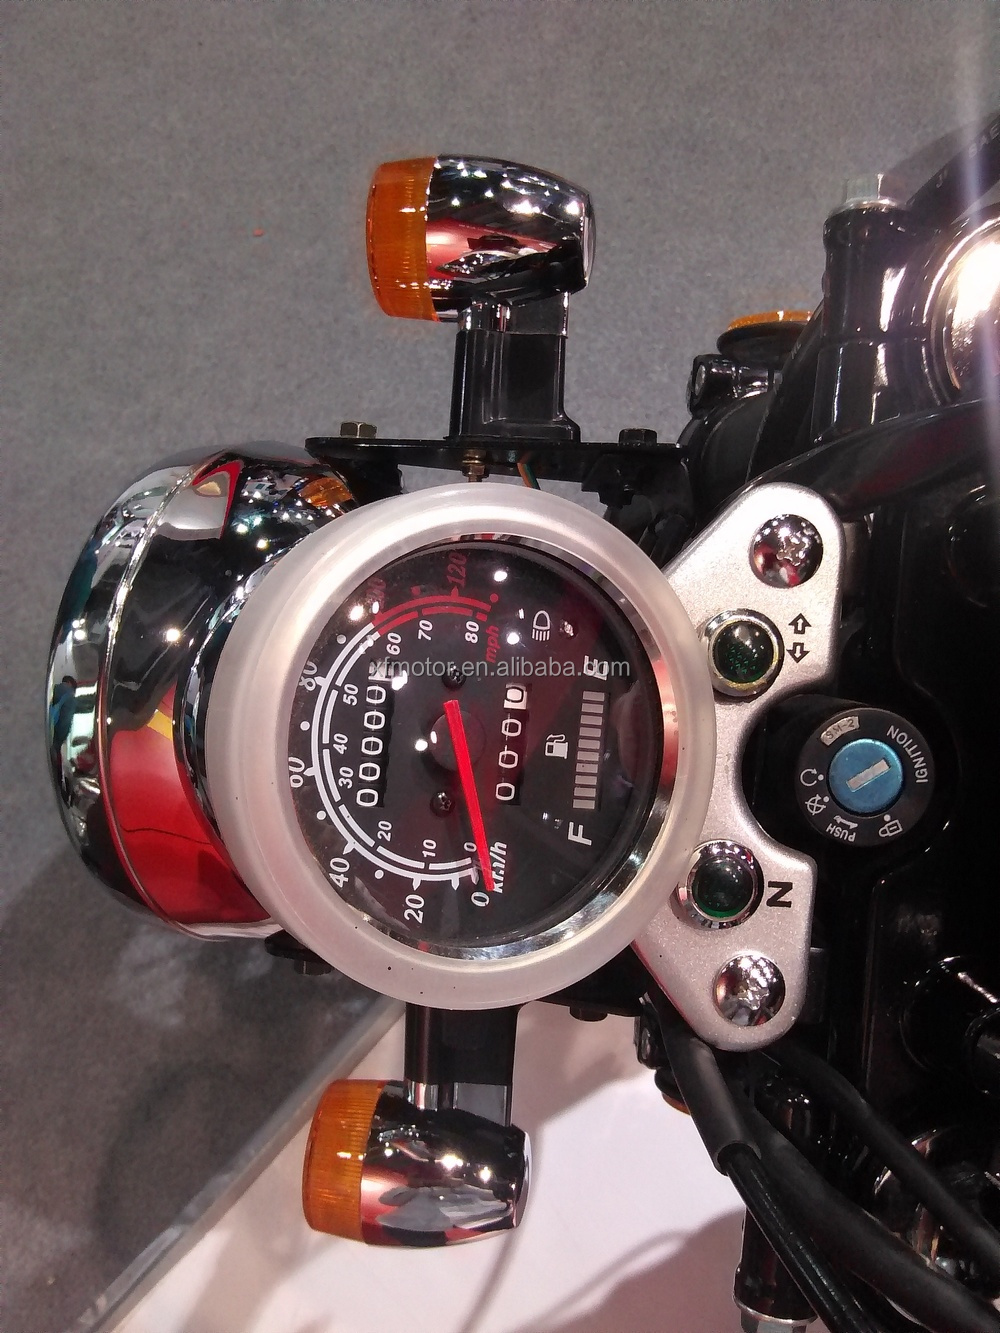 speedometer with fuel lights.jpg